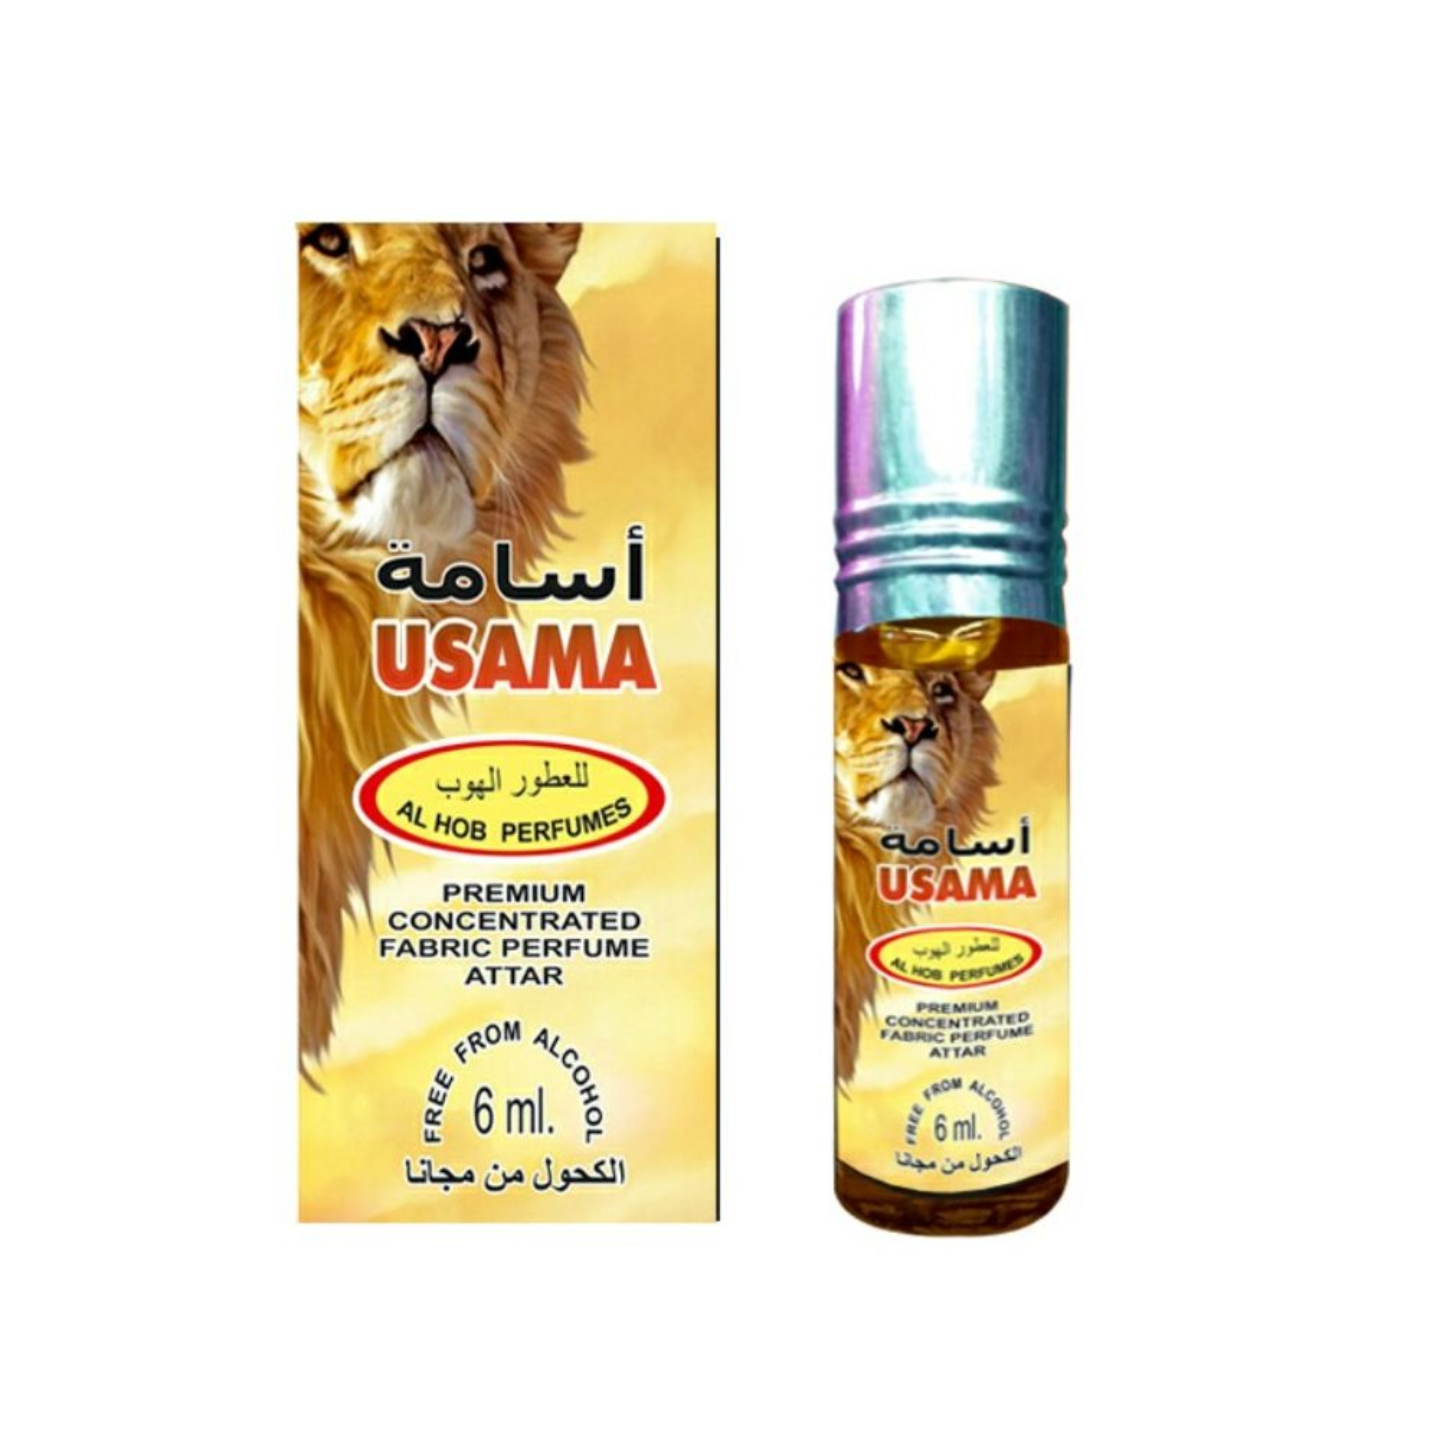 USAMA ATTAR BY AL HOB PERFUMES